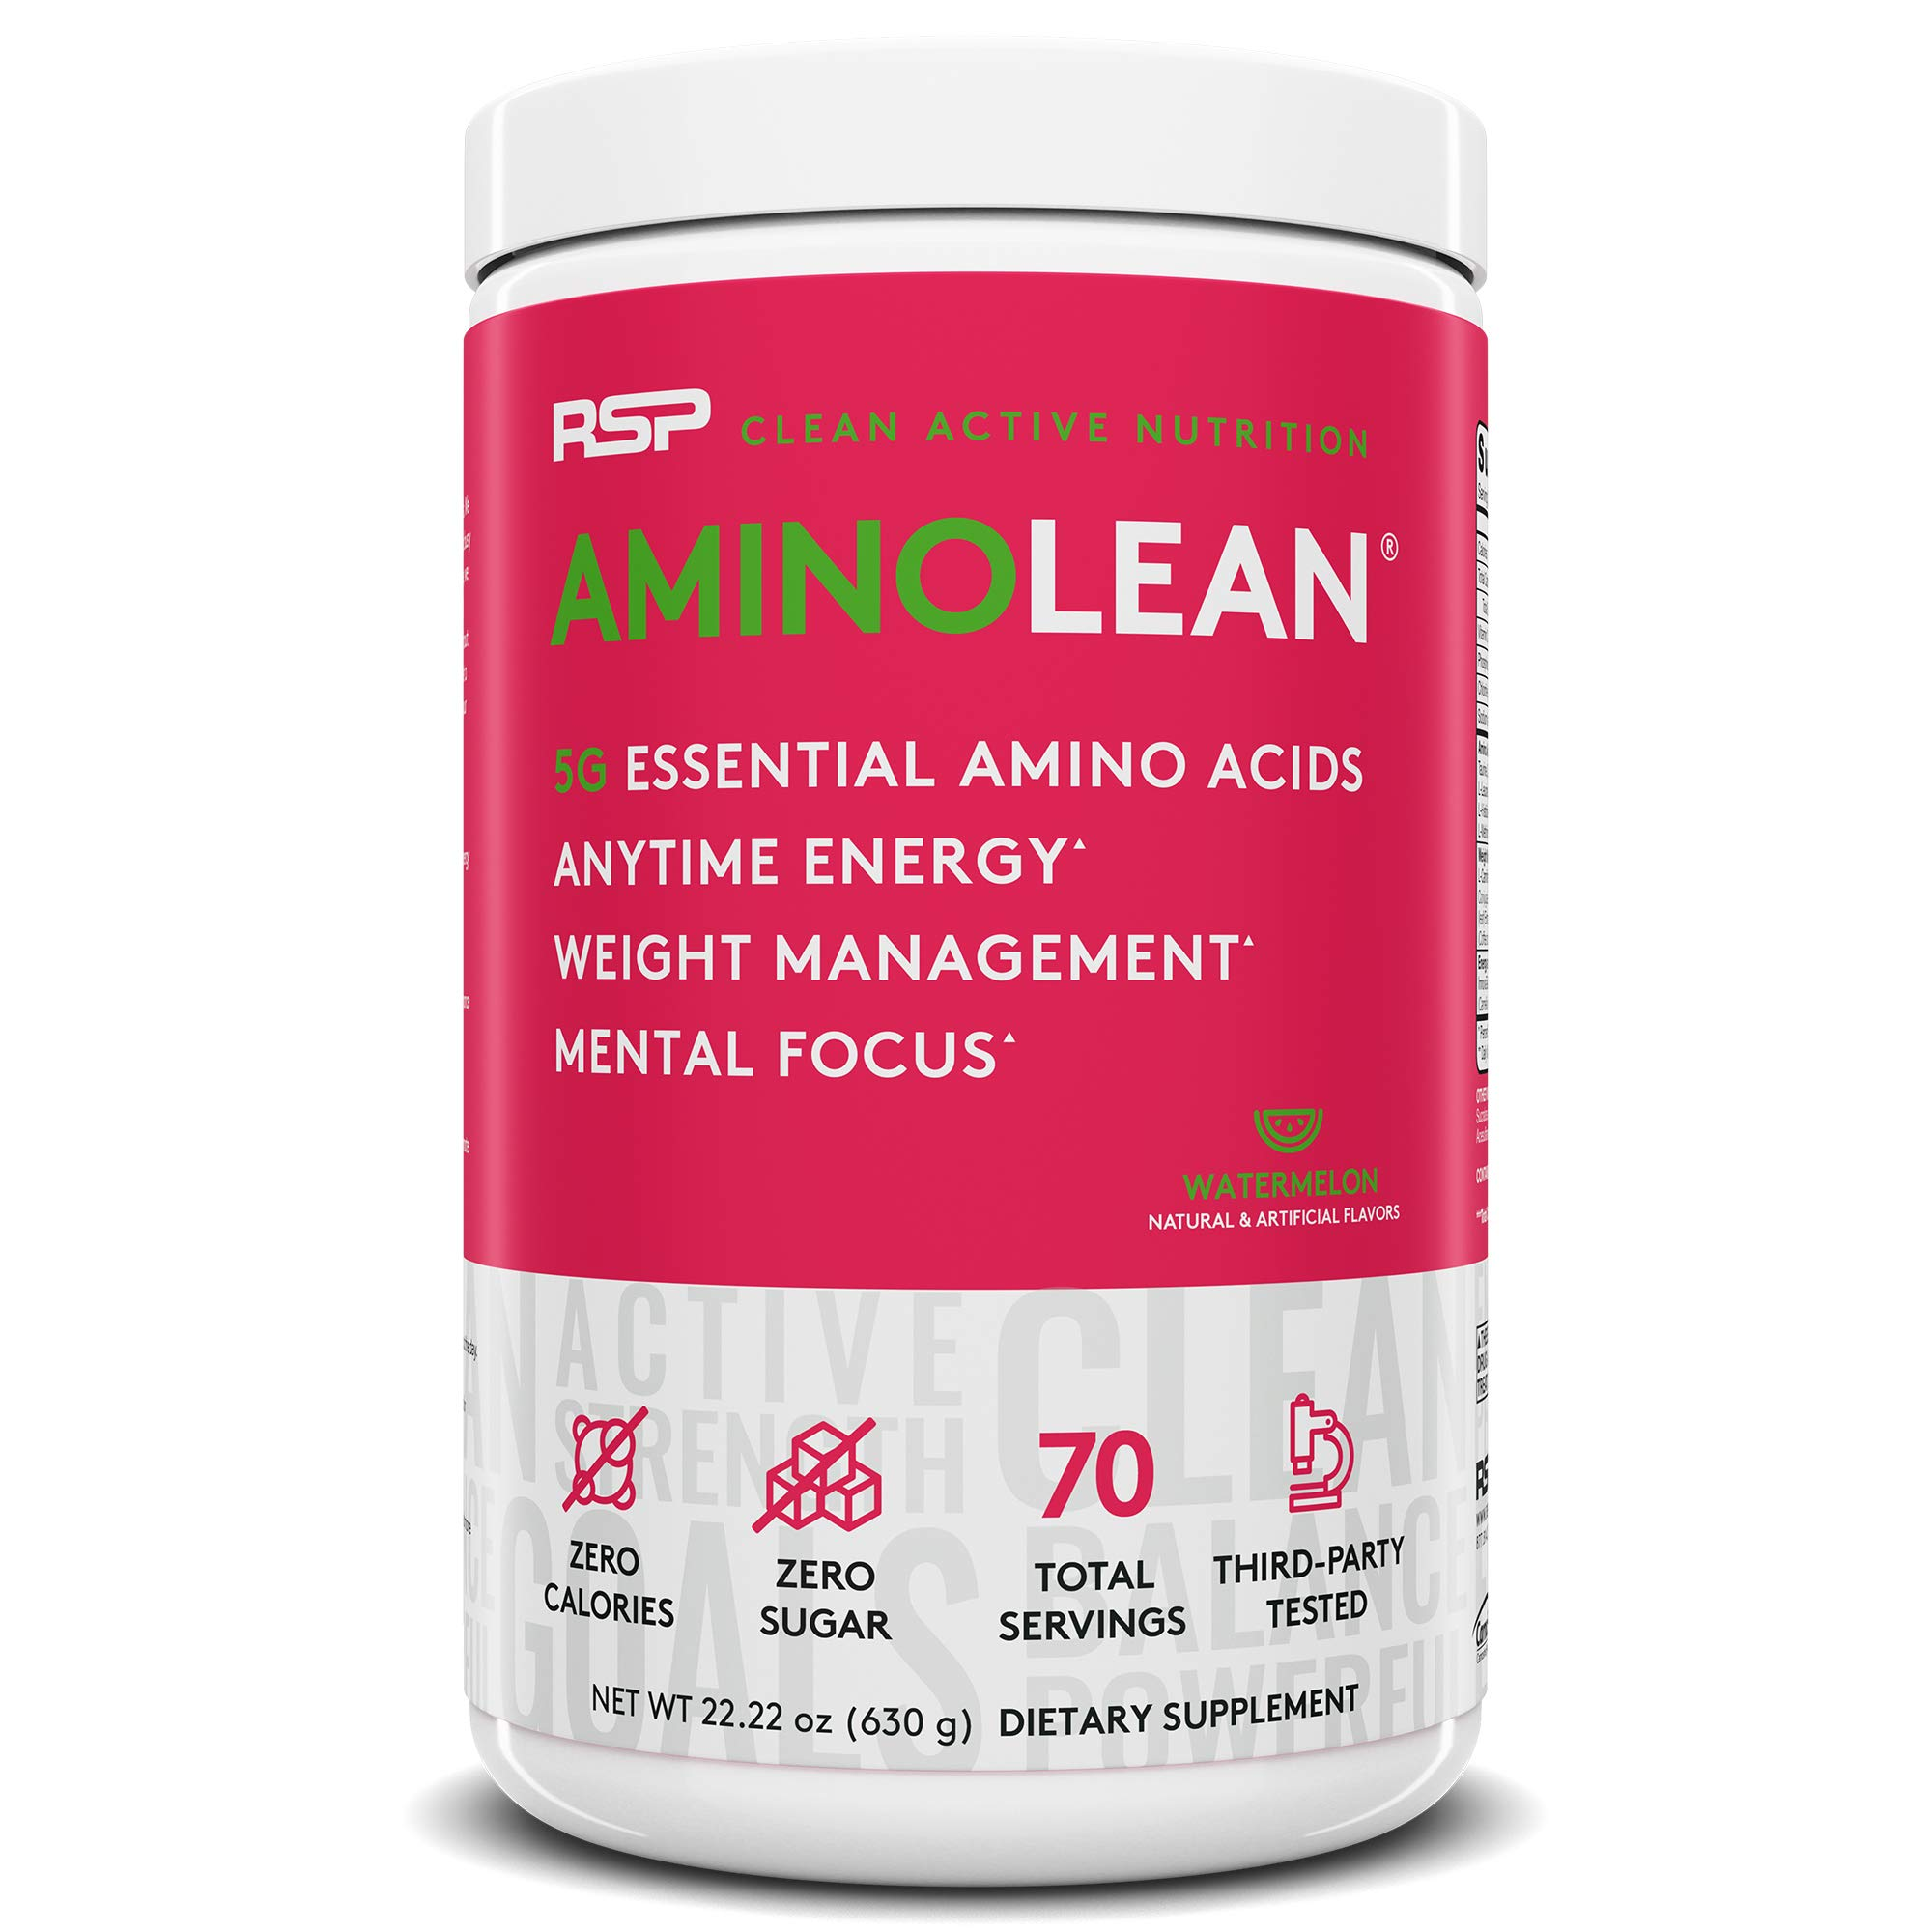 RSP AminoLean - All-in-One Pre Workout, Amino Energy, Weight Management Supplement with Amino Acids, Complete Preworkout Energy for Men & Women, Watermelon, 70 (Packaging May Vary) by RSP Nutrition